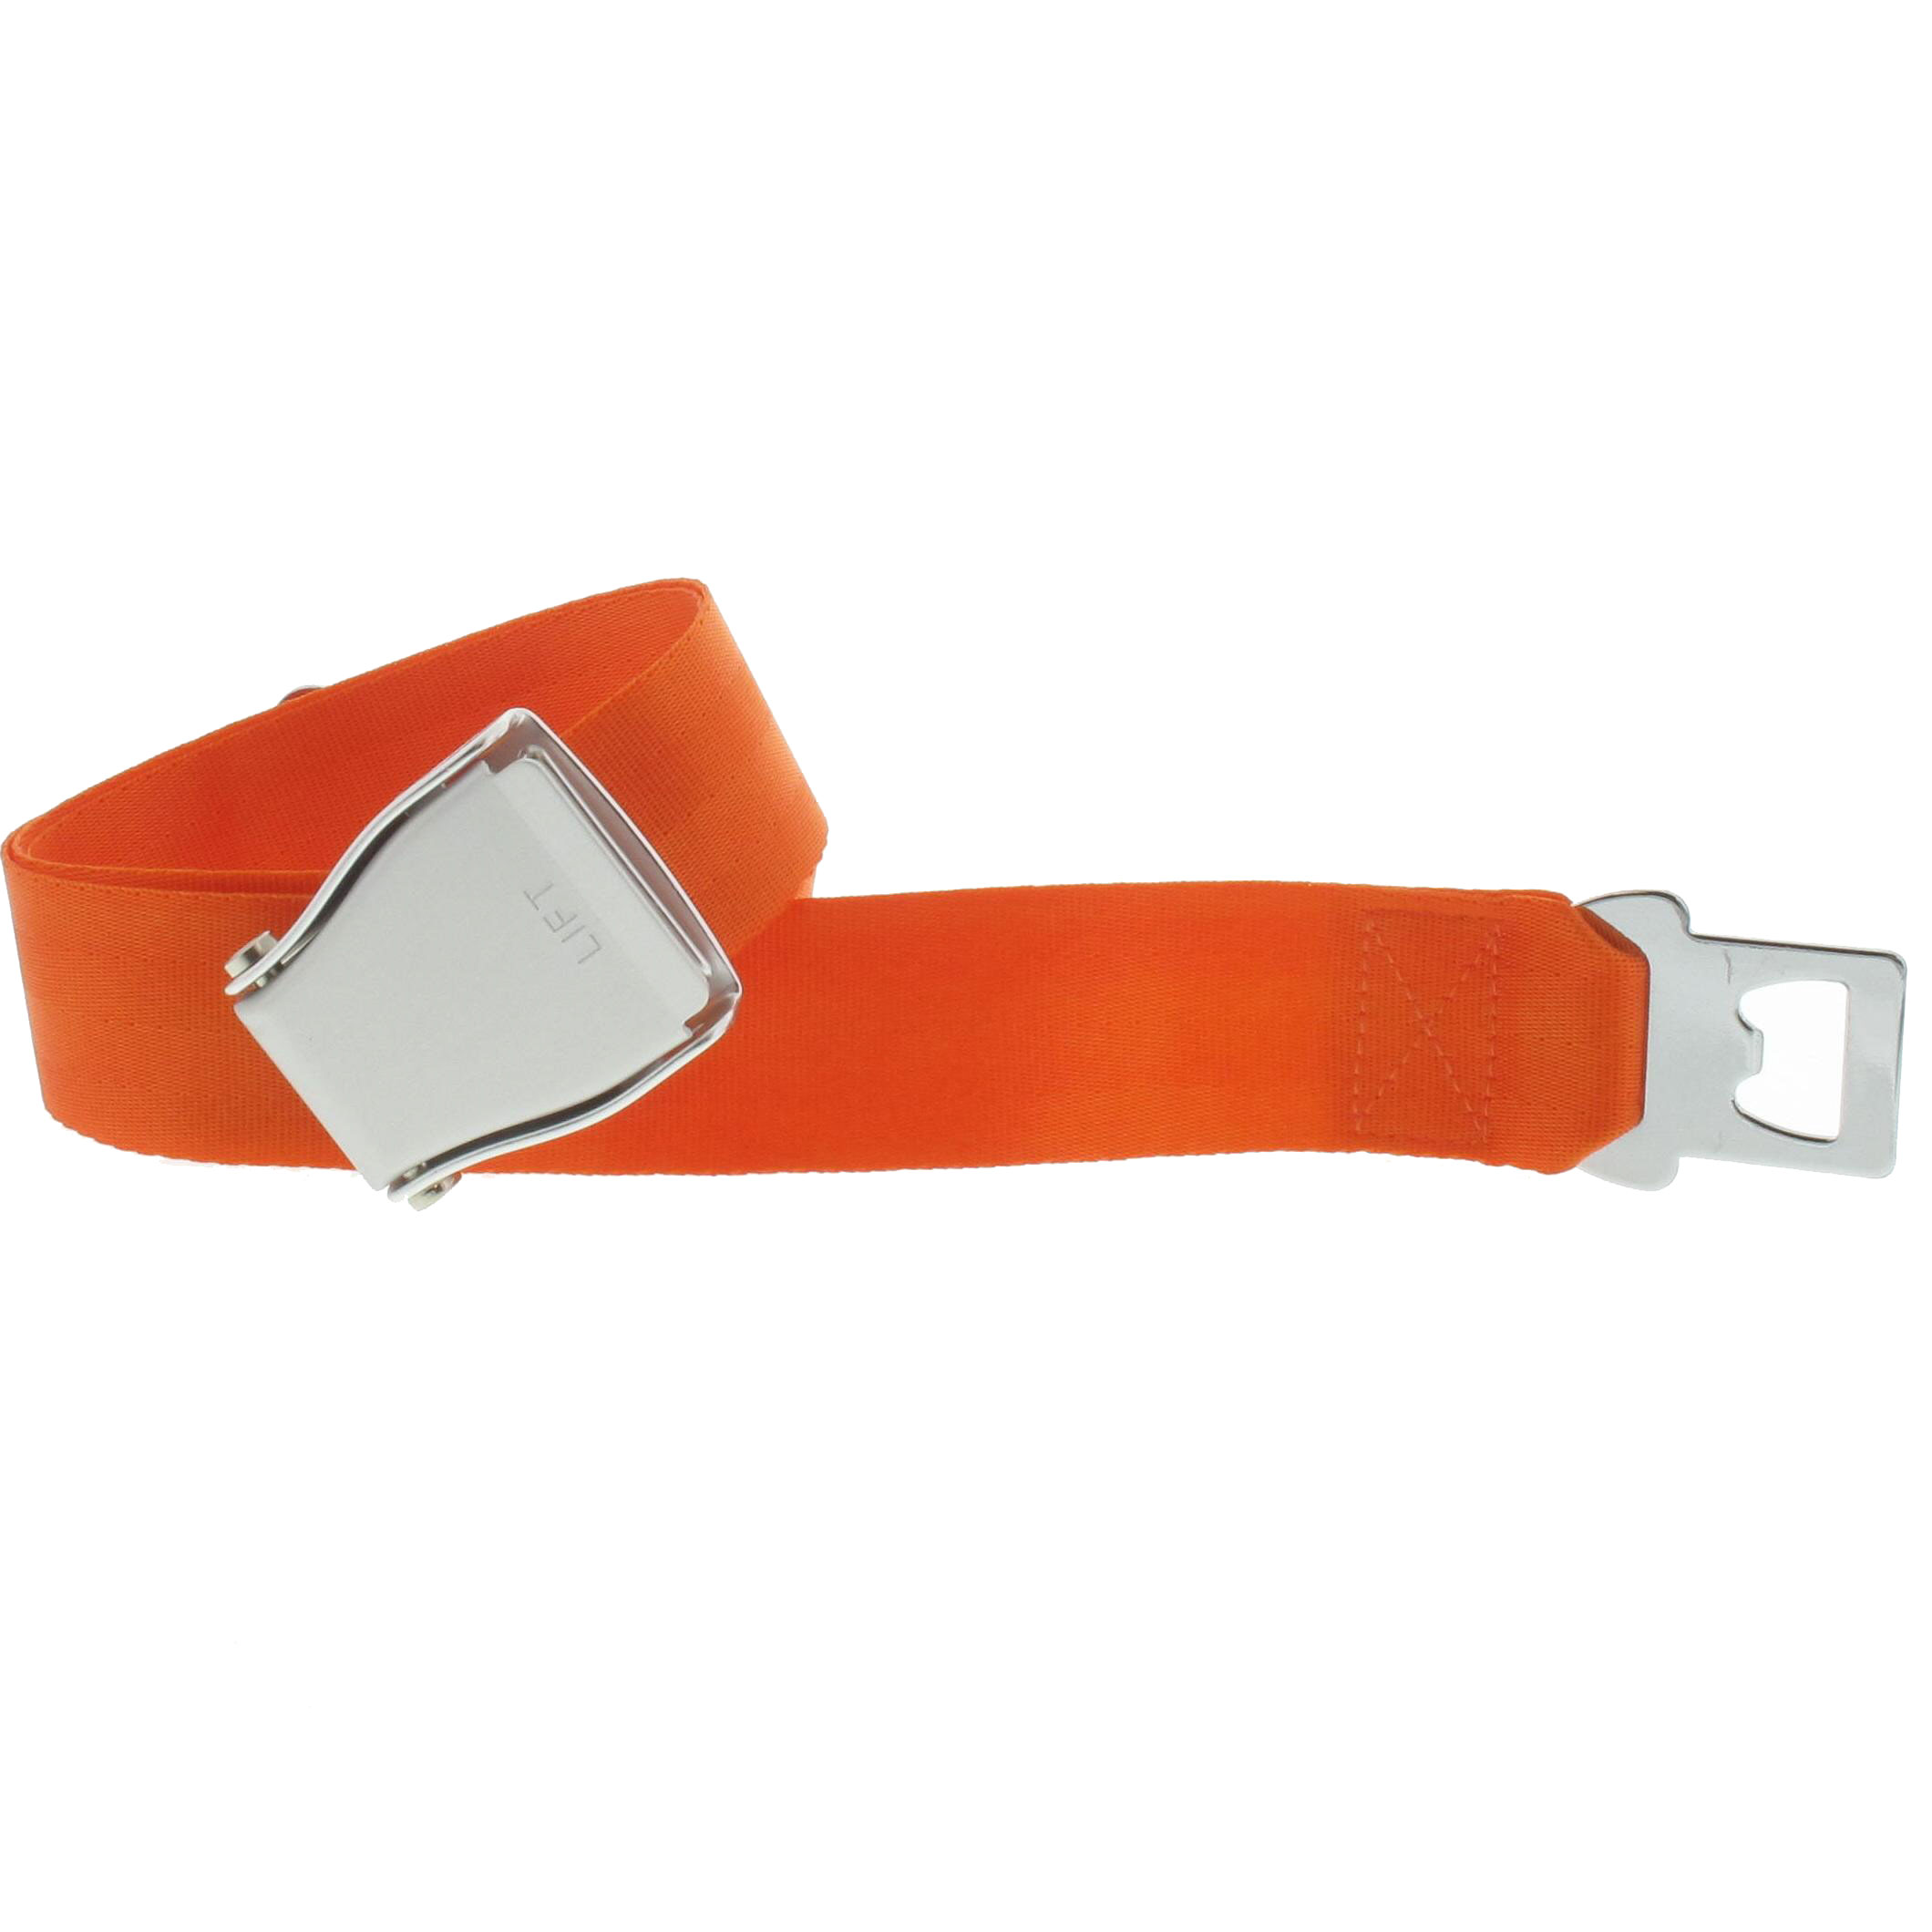 Ceinture Avion orange